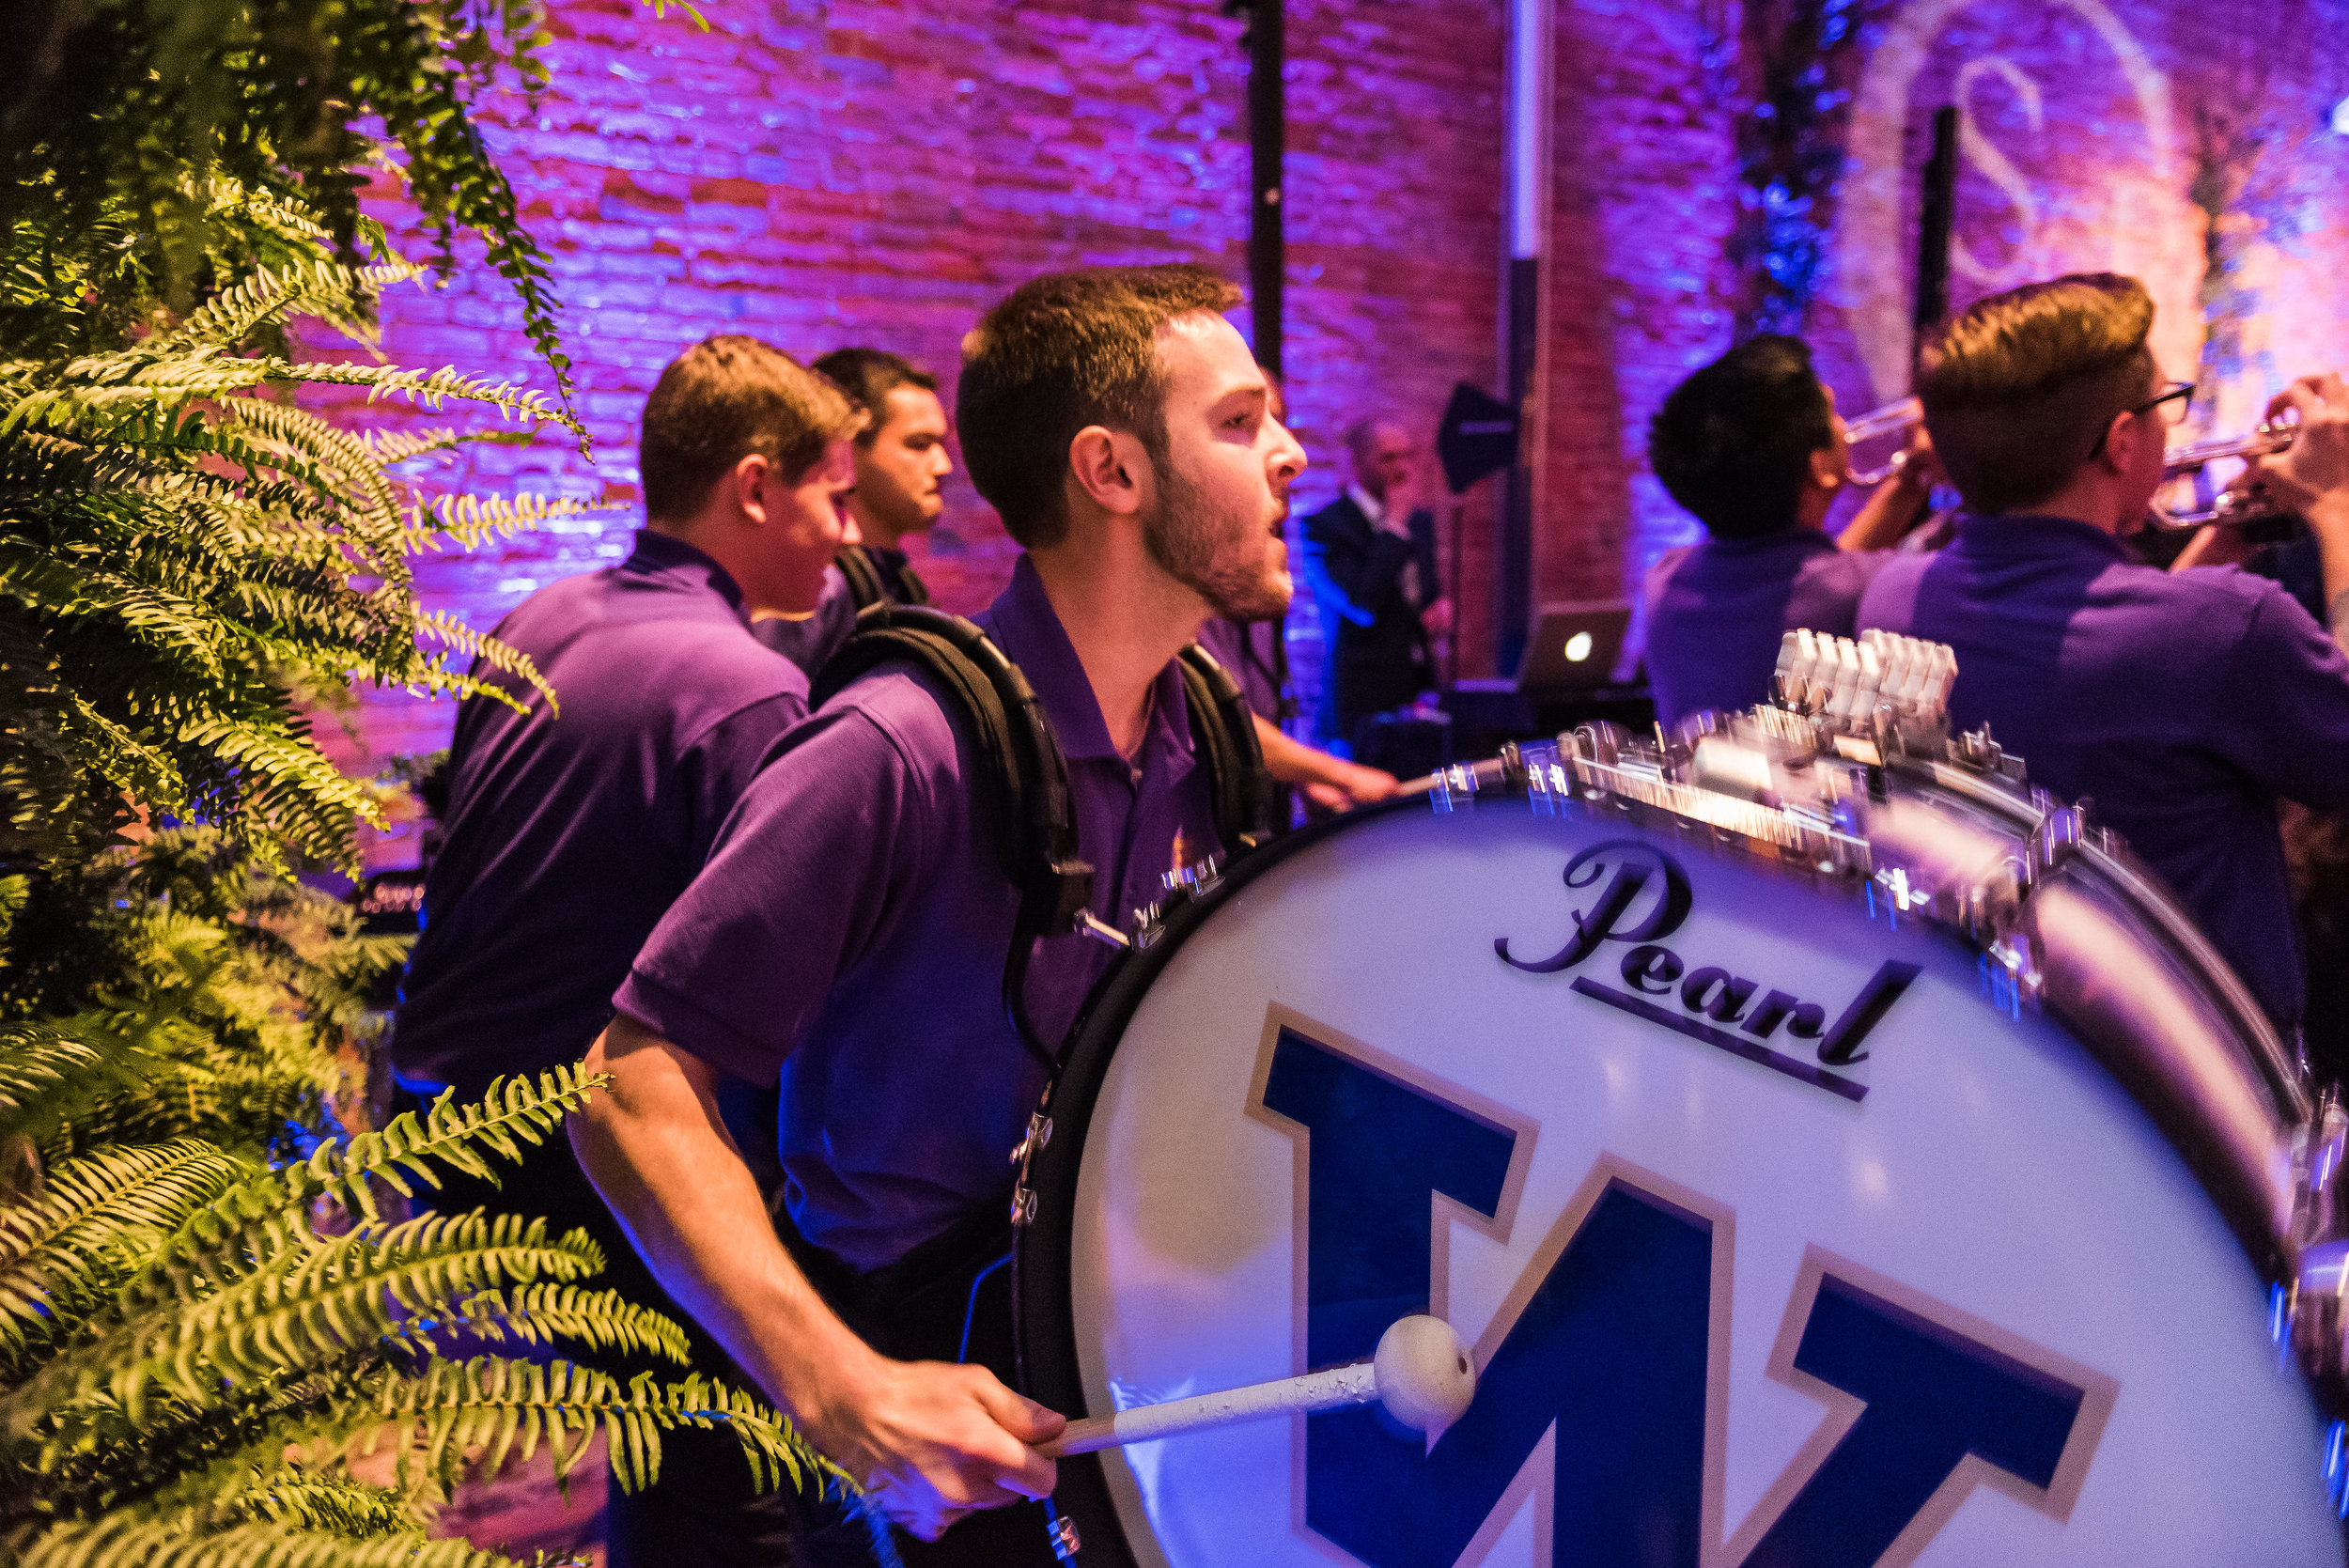 UW Band at Axis Pioneer Square Wedding.jpg